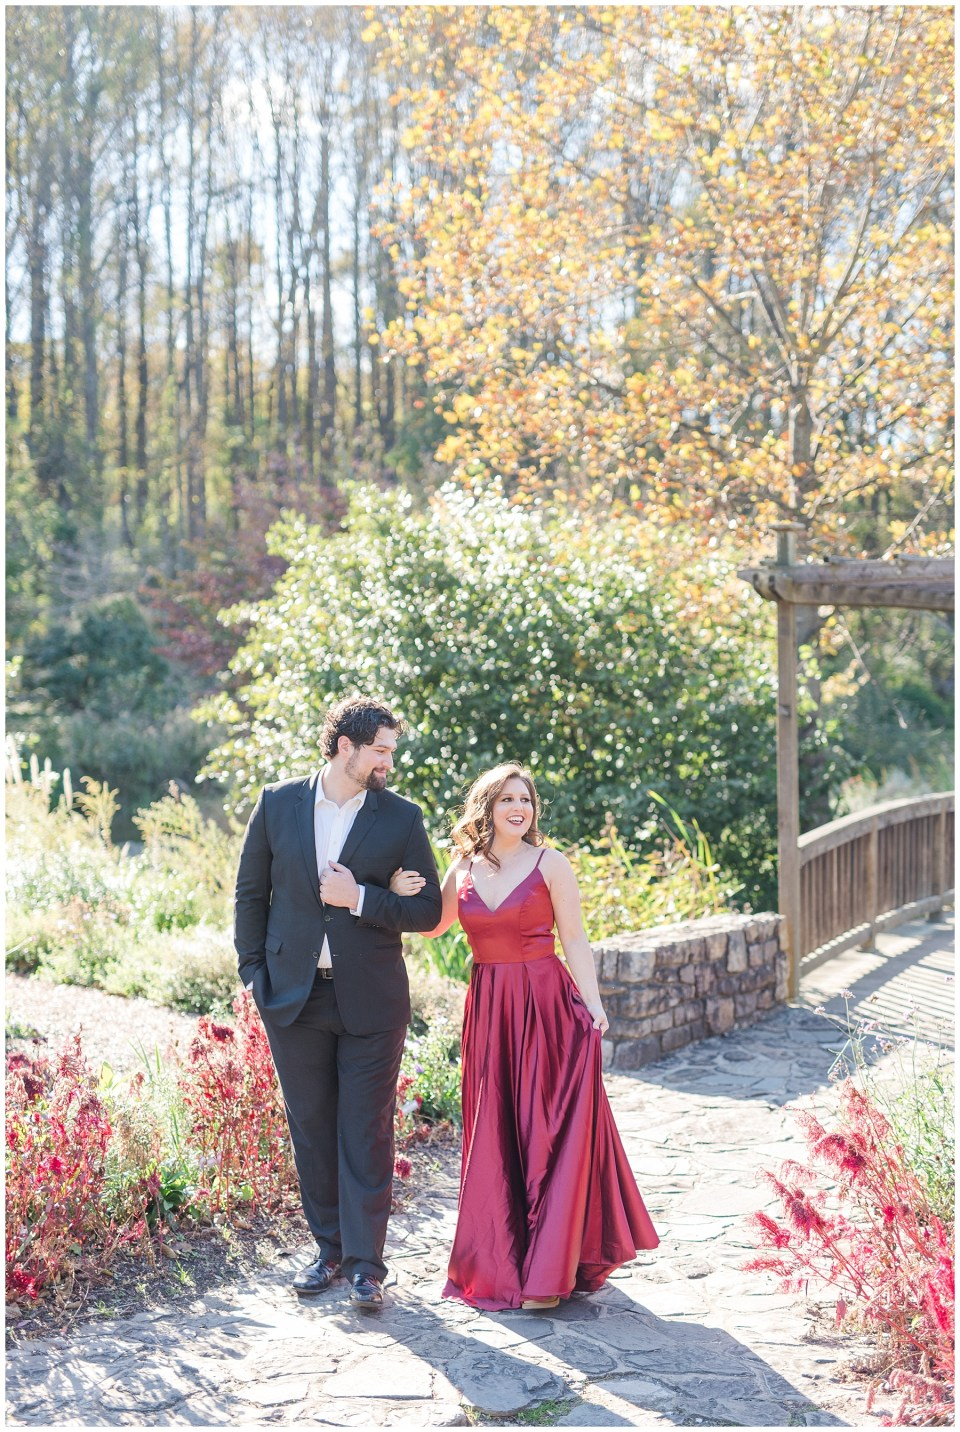 meadowlark-botanical-gardens-vienna-virginia-engagement-photos-3_photos.jpg